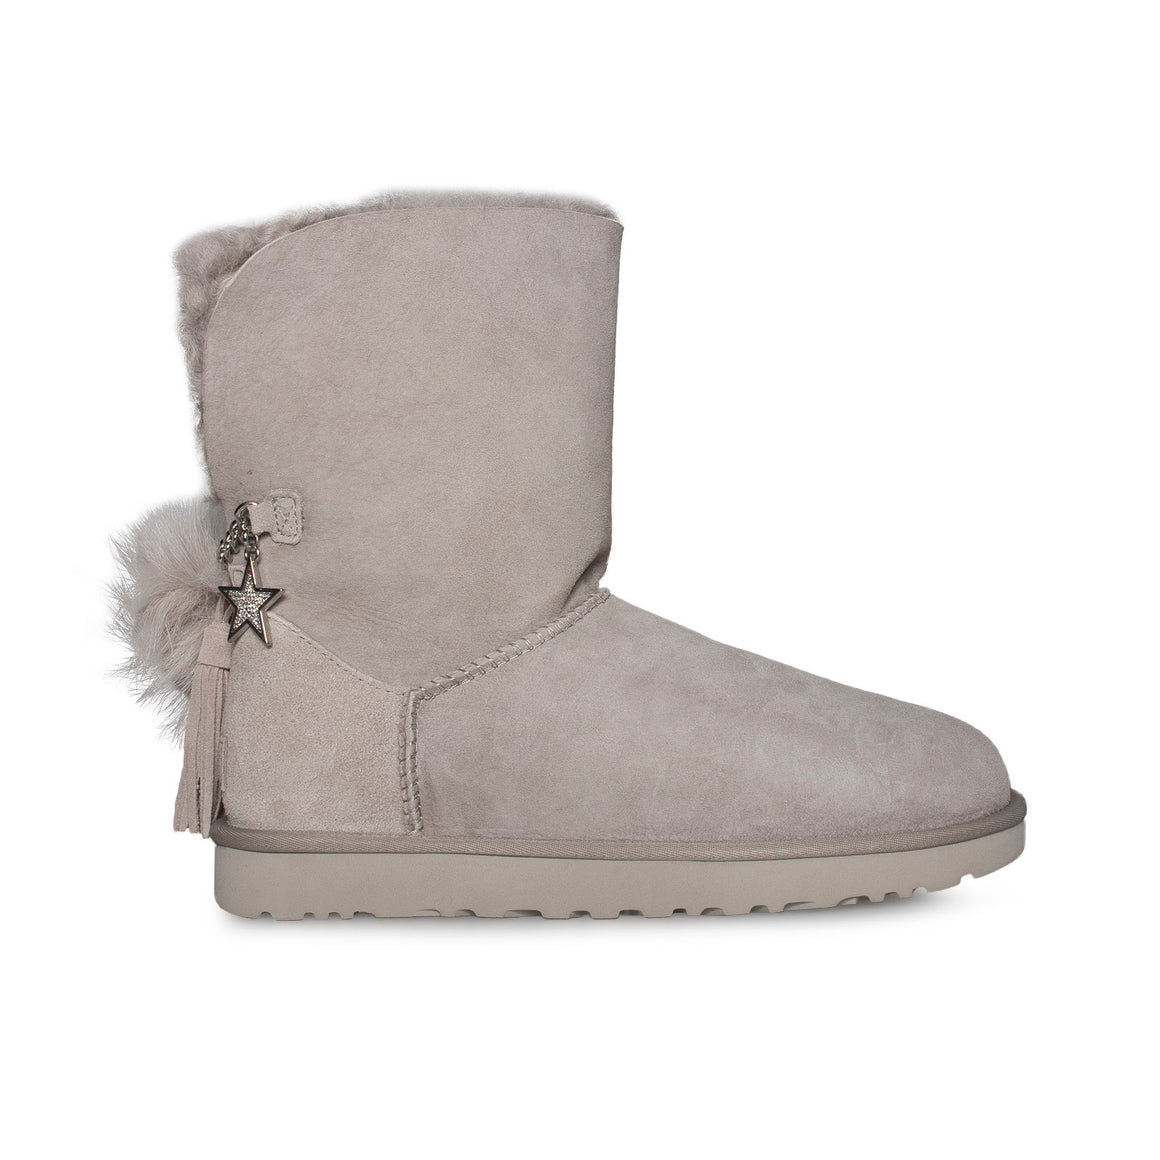 UGG Classic Charm Willow Boots - Women's